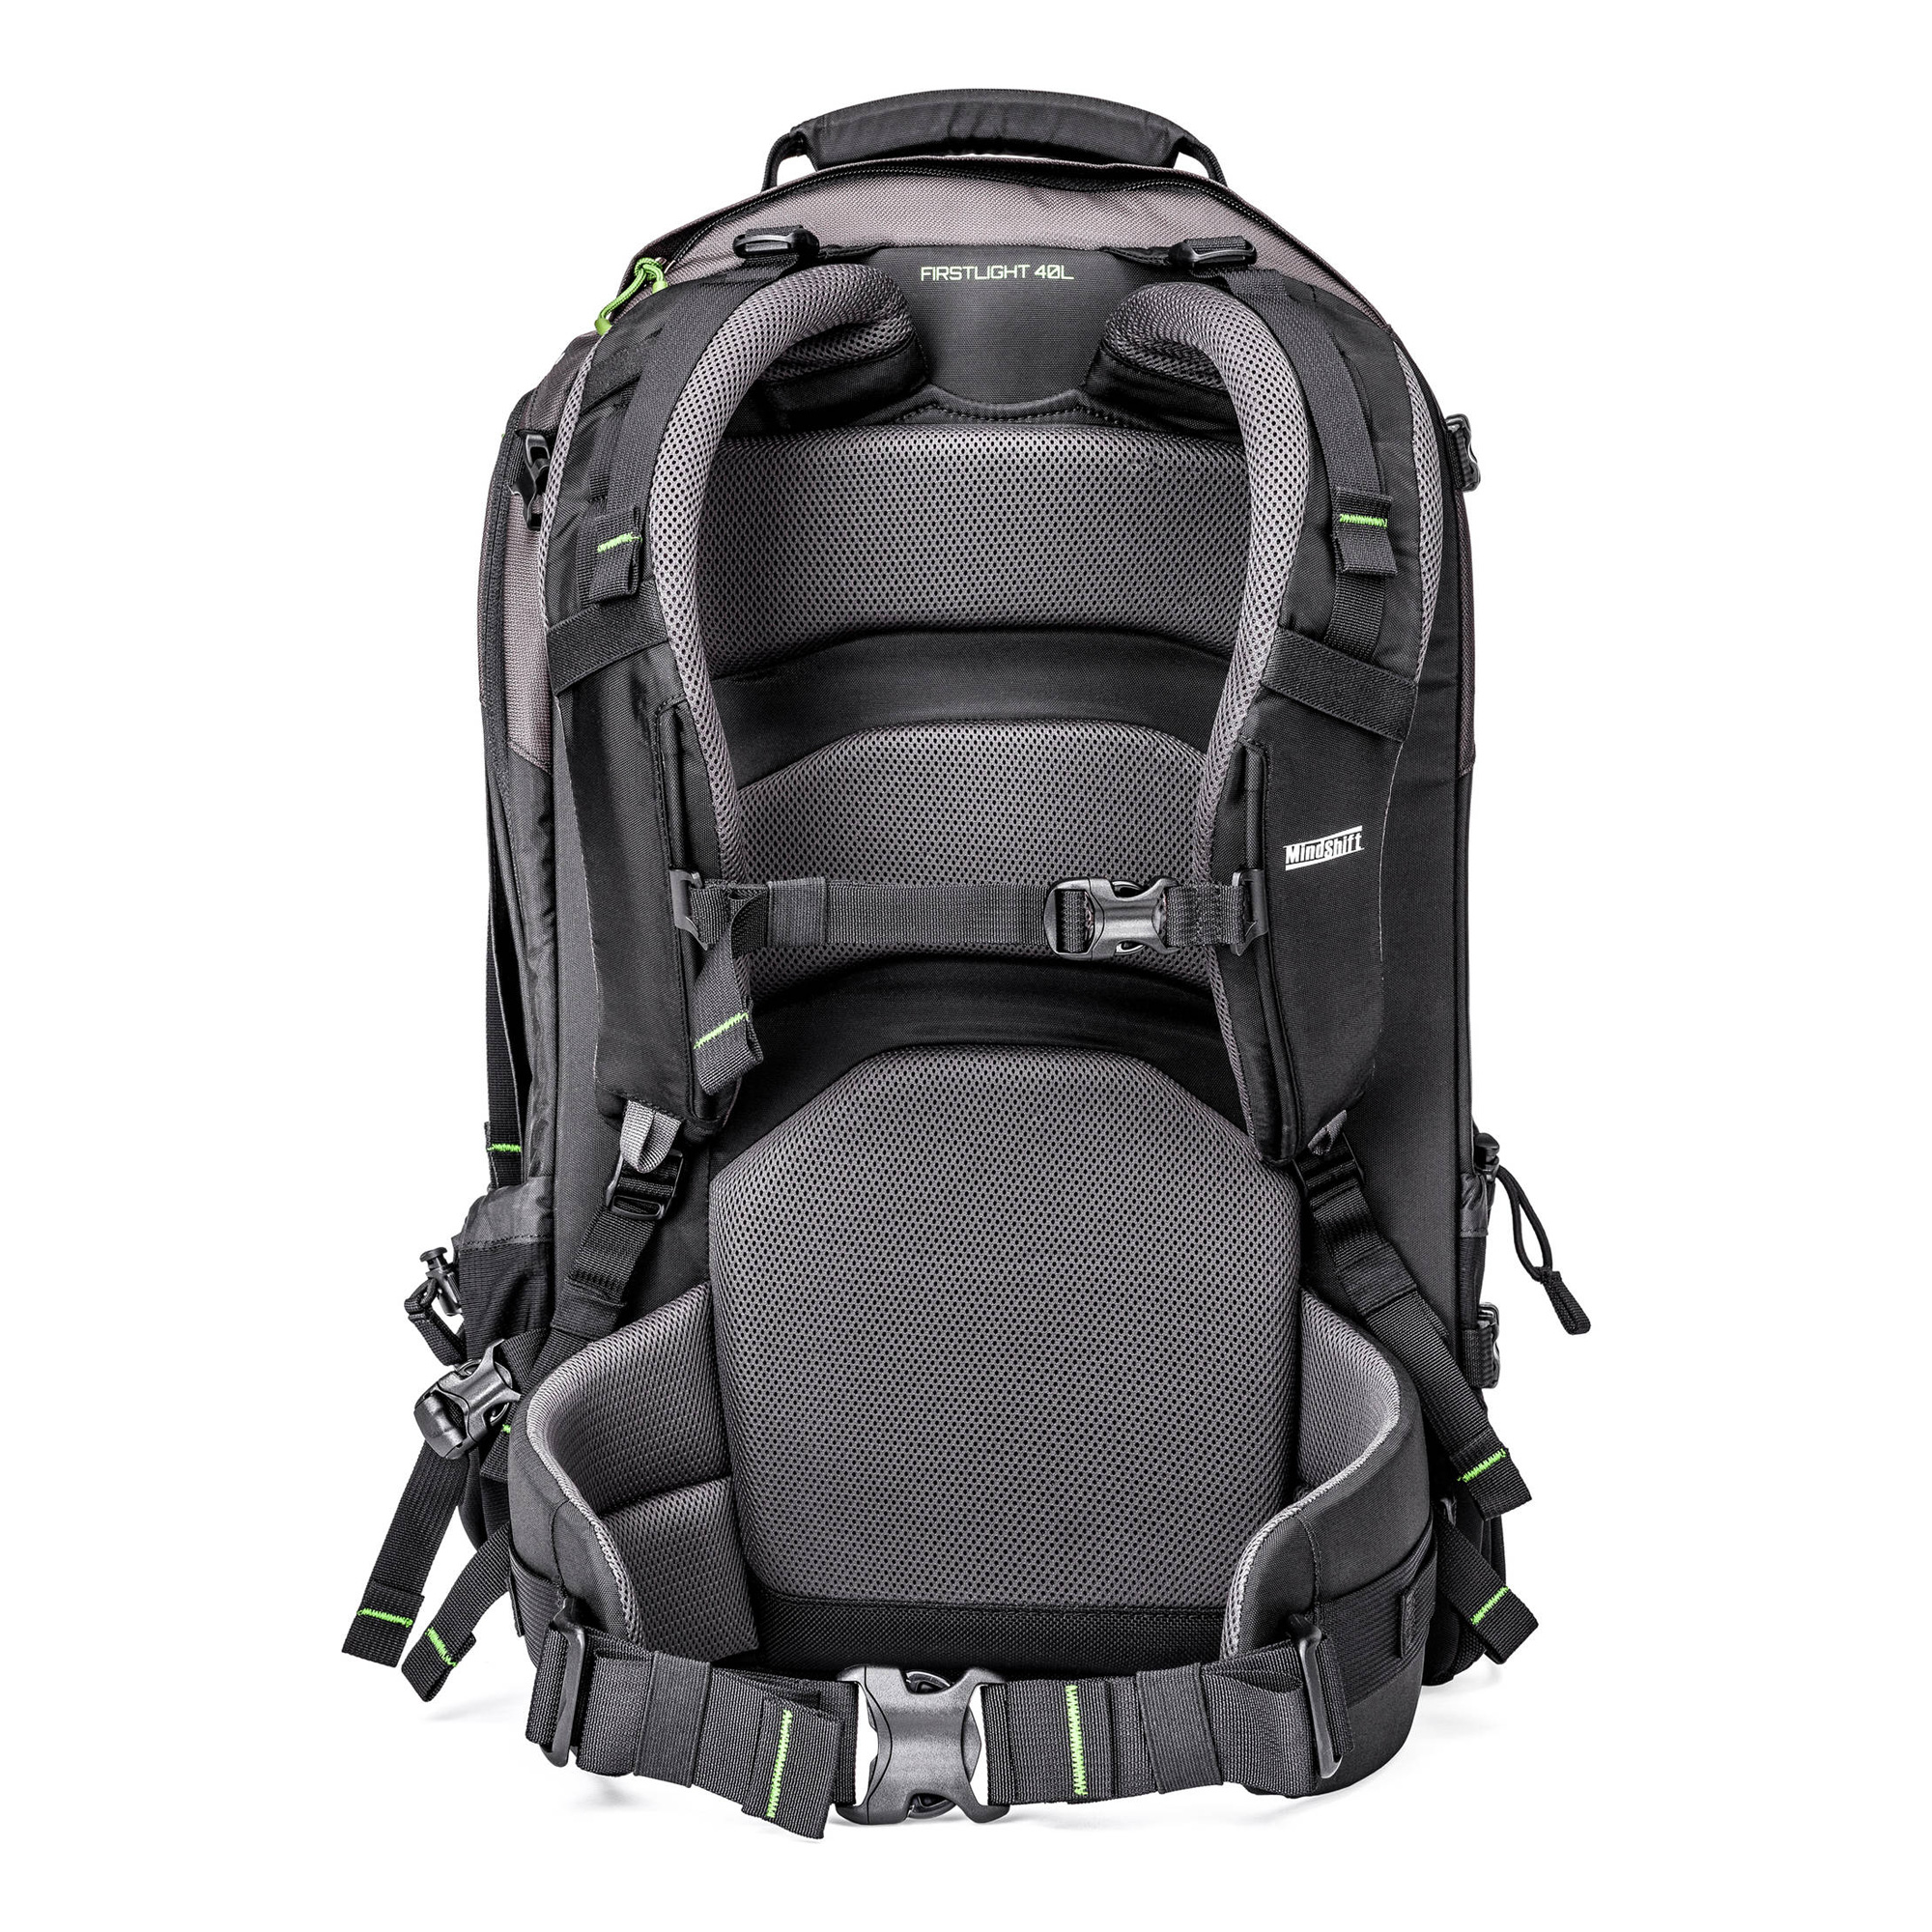 FirstLight 40L DSLR and Laptop Backpack Charcoal